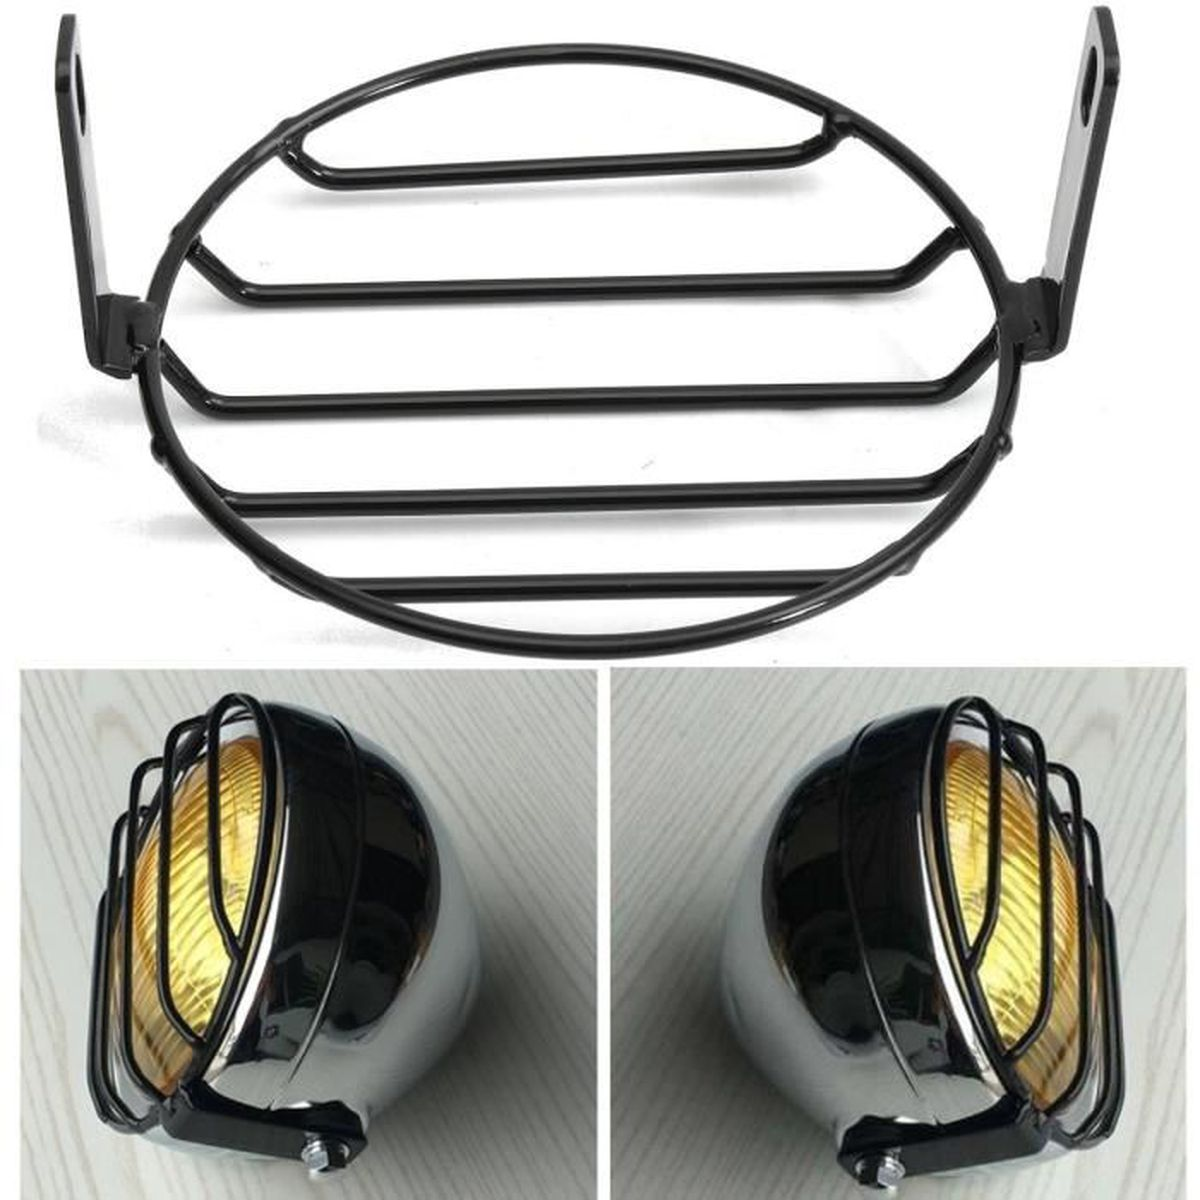 6 4 moto grille r tro phare lampe headlight couvre pour yamaha suzuki kawasaki achat vente. Black Bedroom Furniture Sets. Home Design Ideas